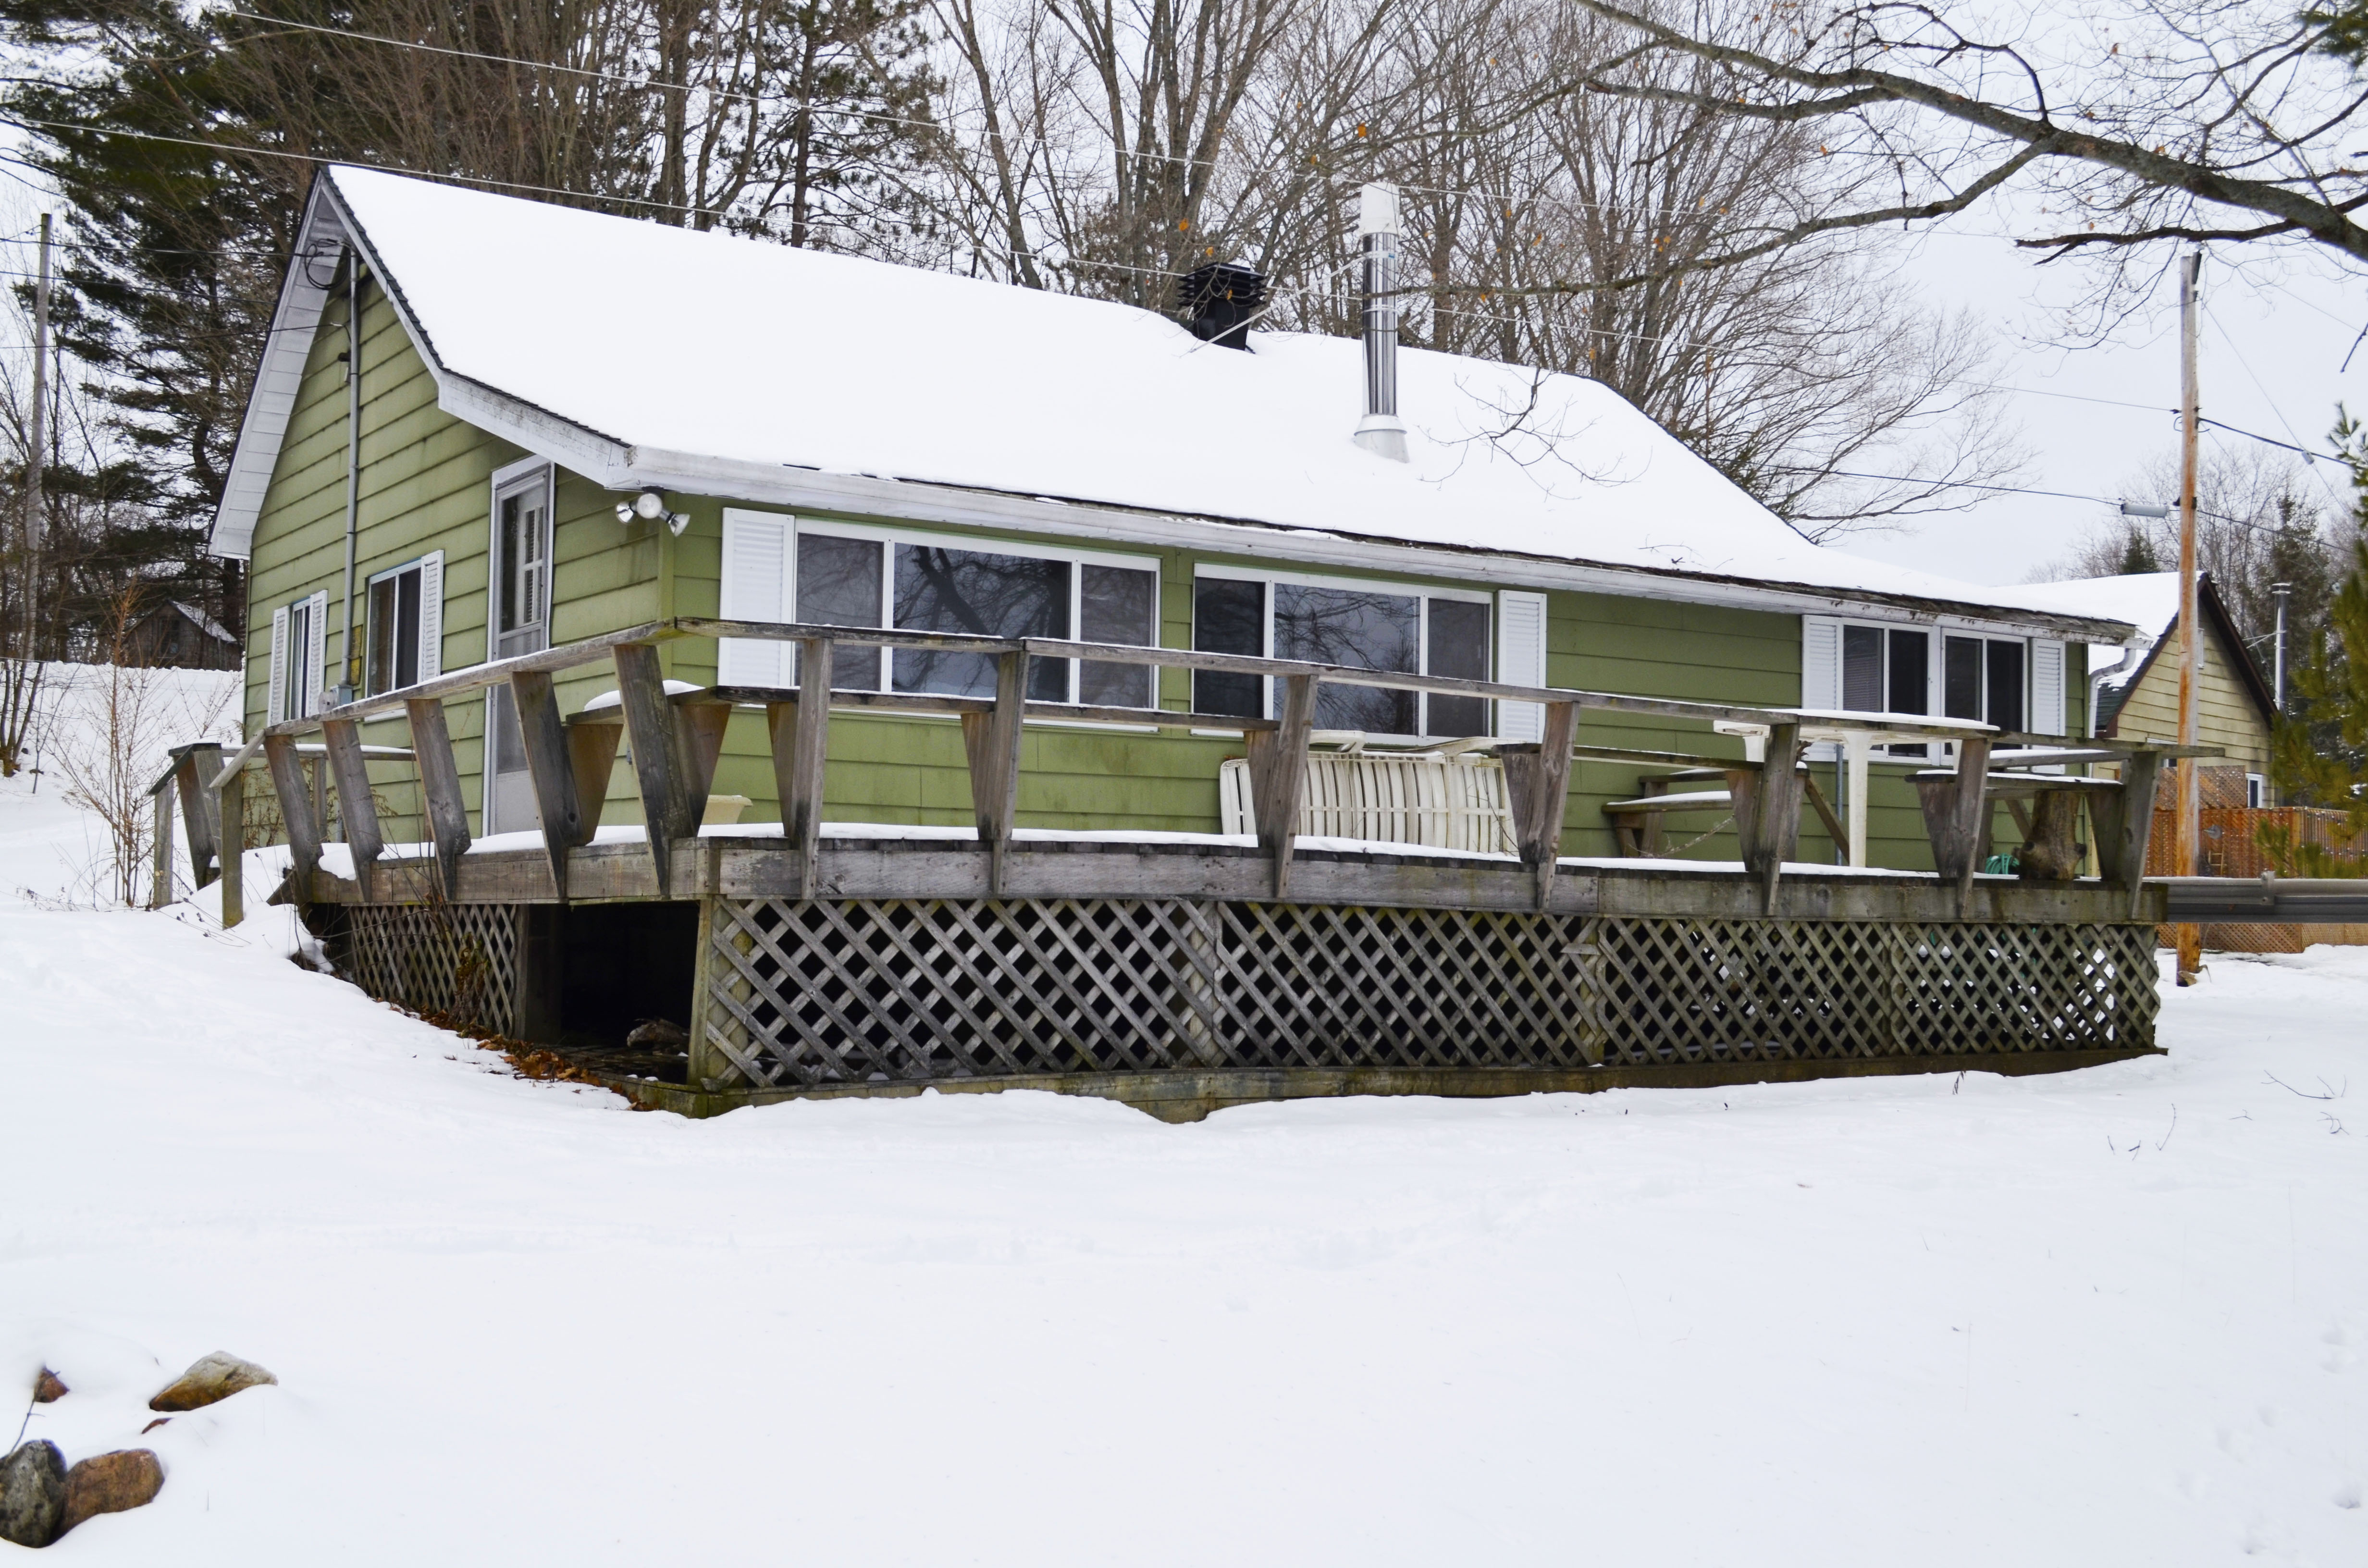 Big Clear Lake, $299,000, 1051 Big Clear Lane, Arden, Ontario